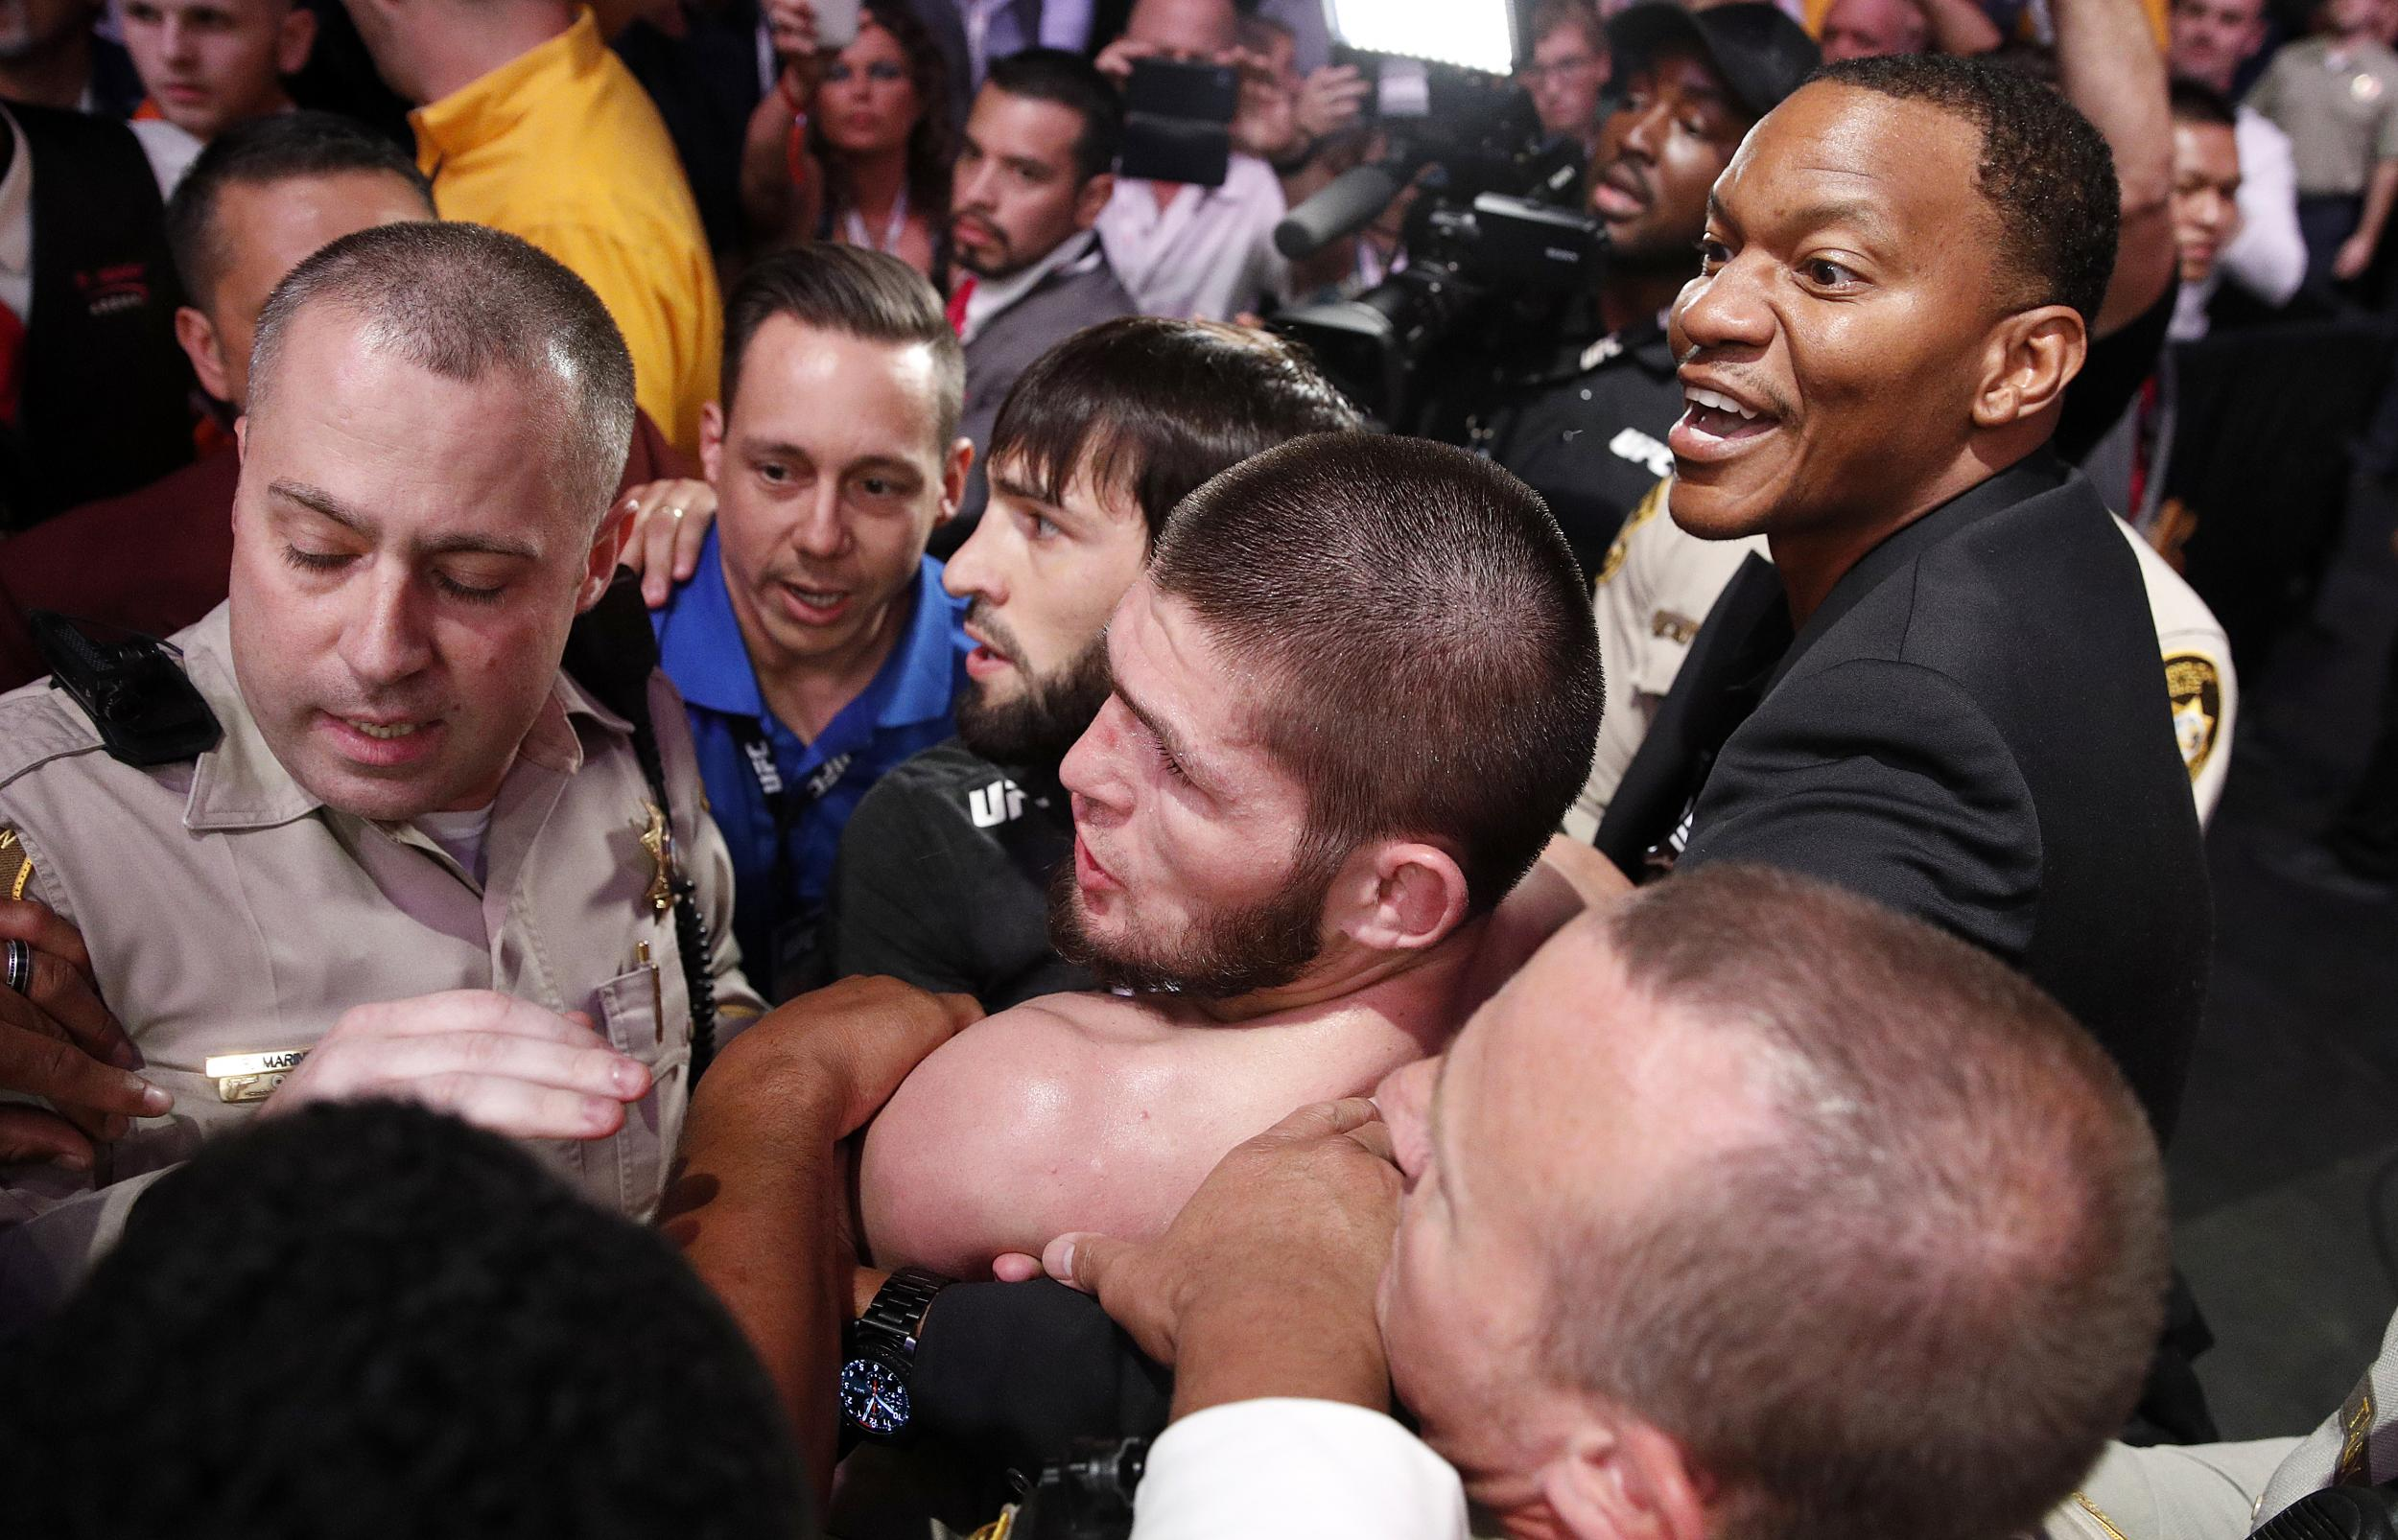 270612253-khabib-nurmagomedov-bottom-center-is-held-back-outside-of-the-cage-after-fighting-conor-mc